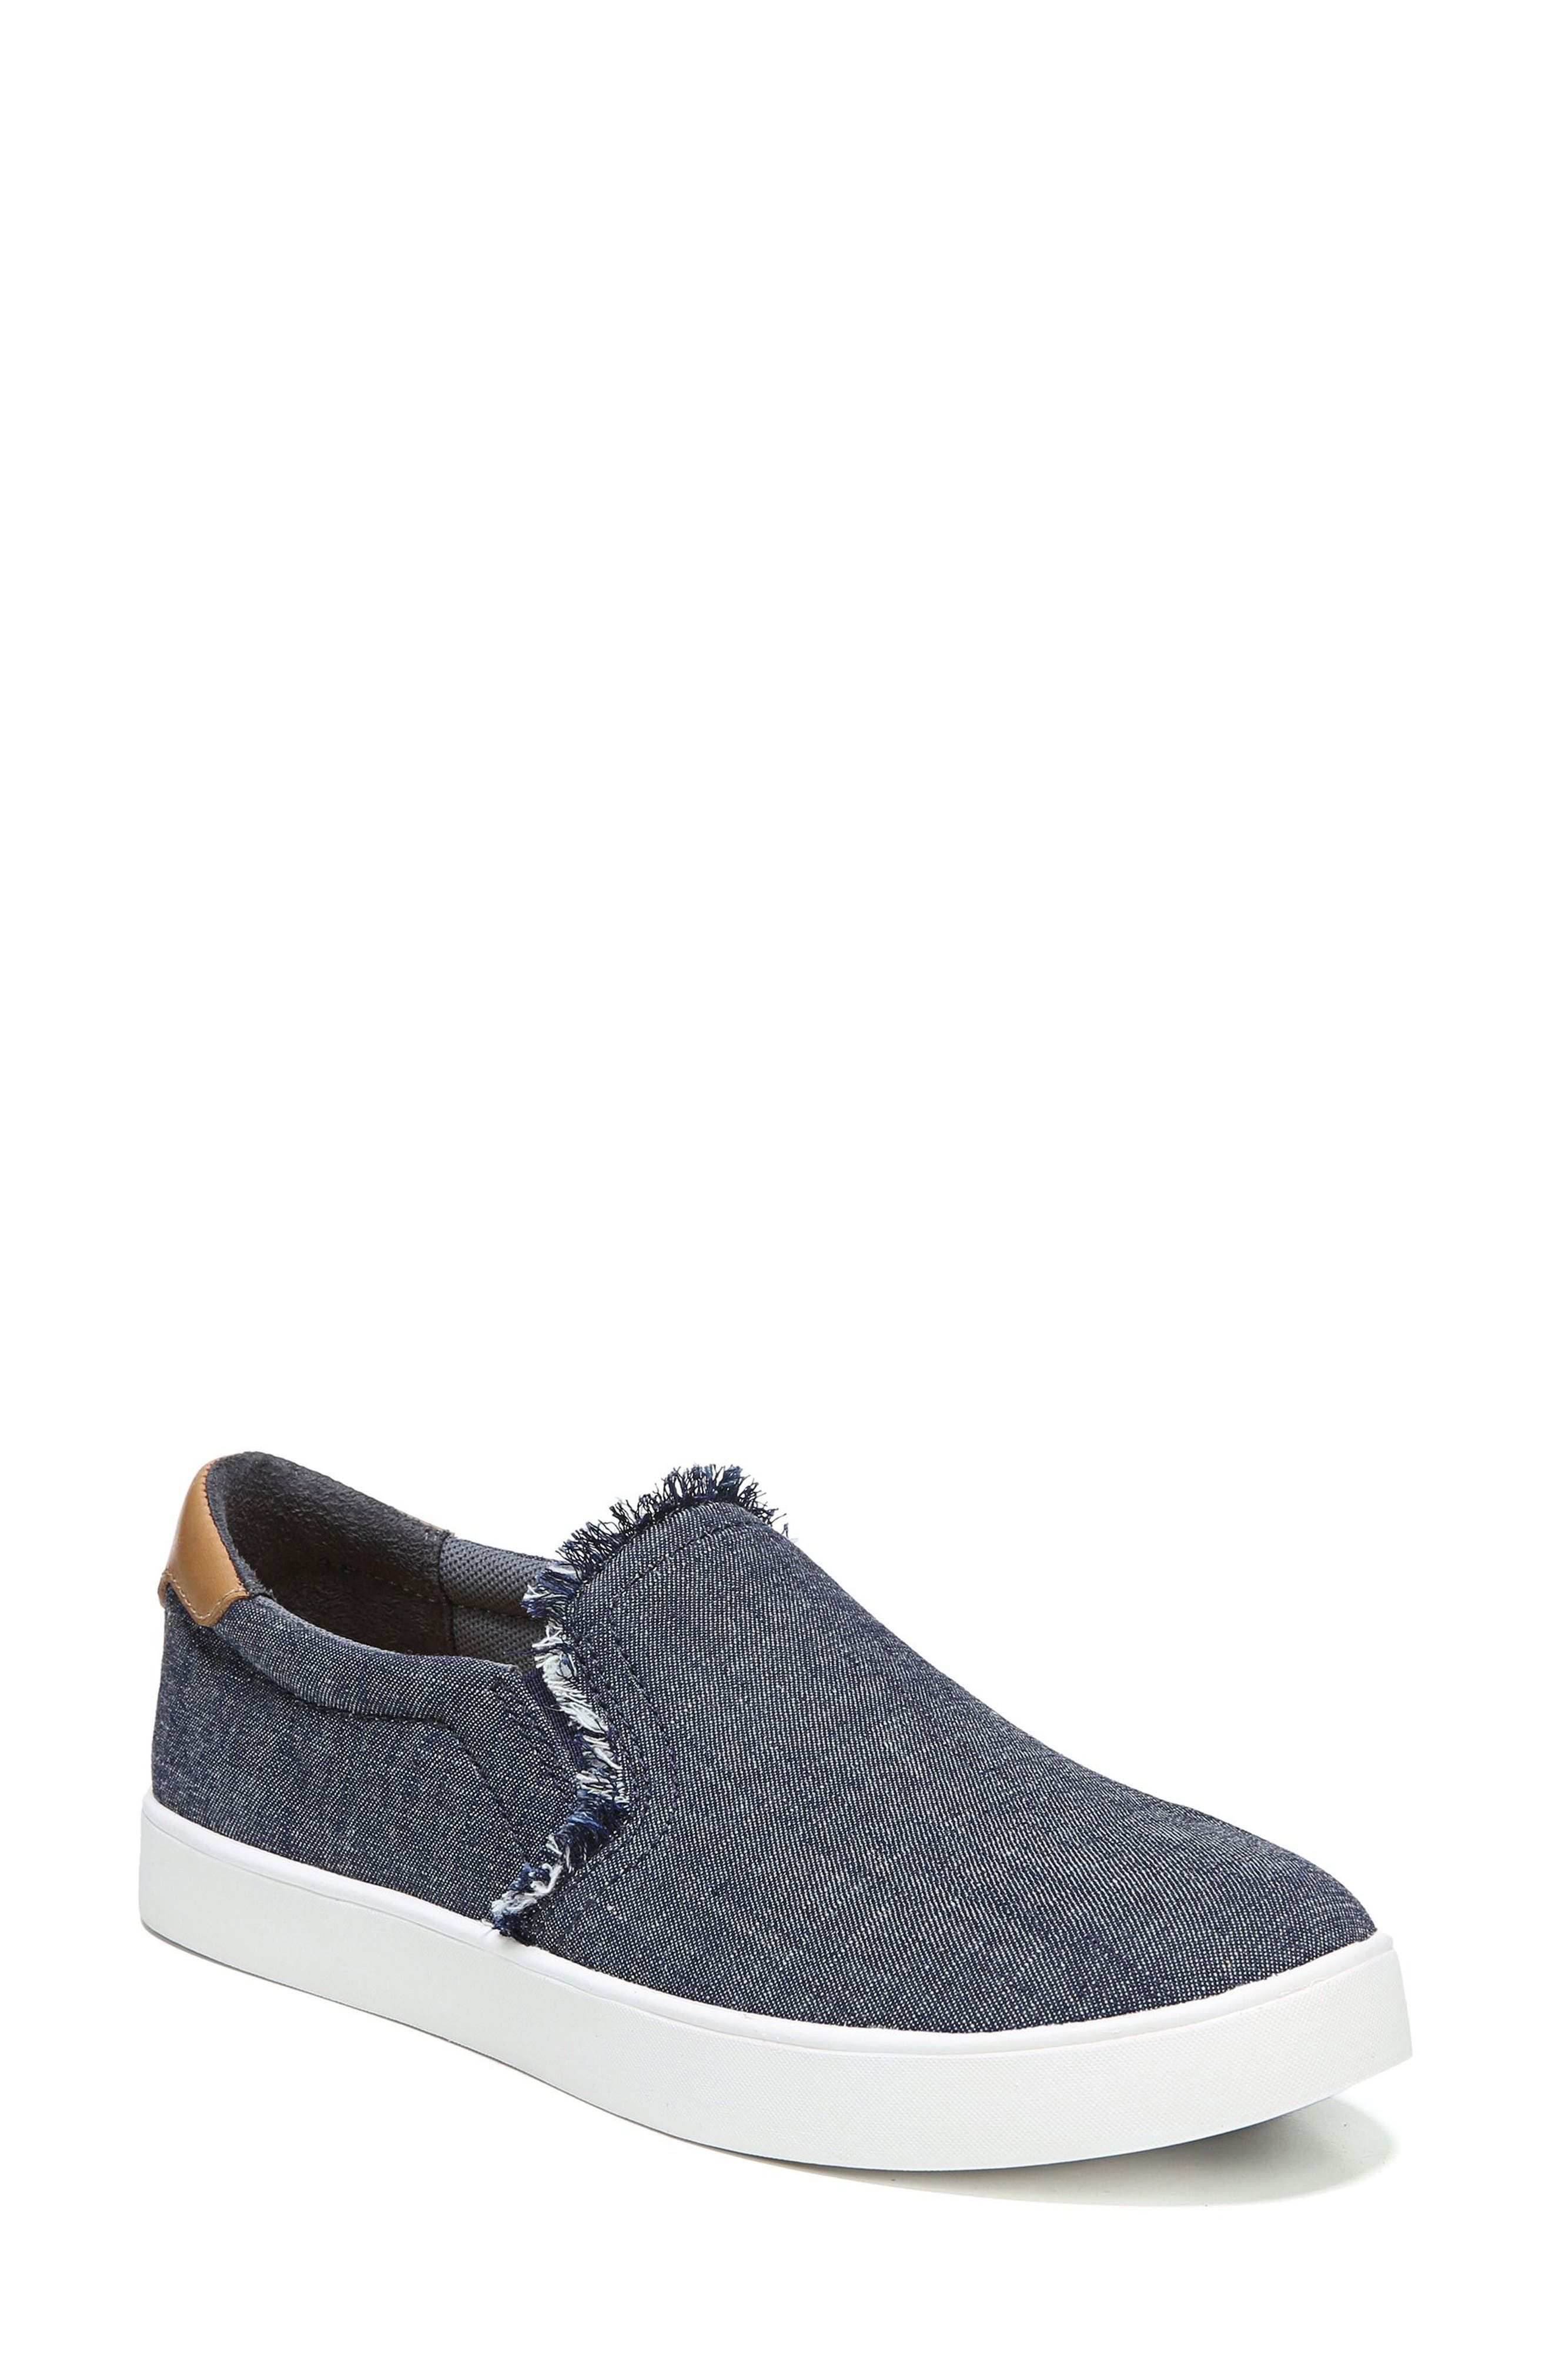 Scout Fray Slip-on Sneaker,                             Main thumbnail 1, color,                             400